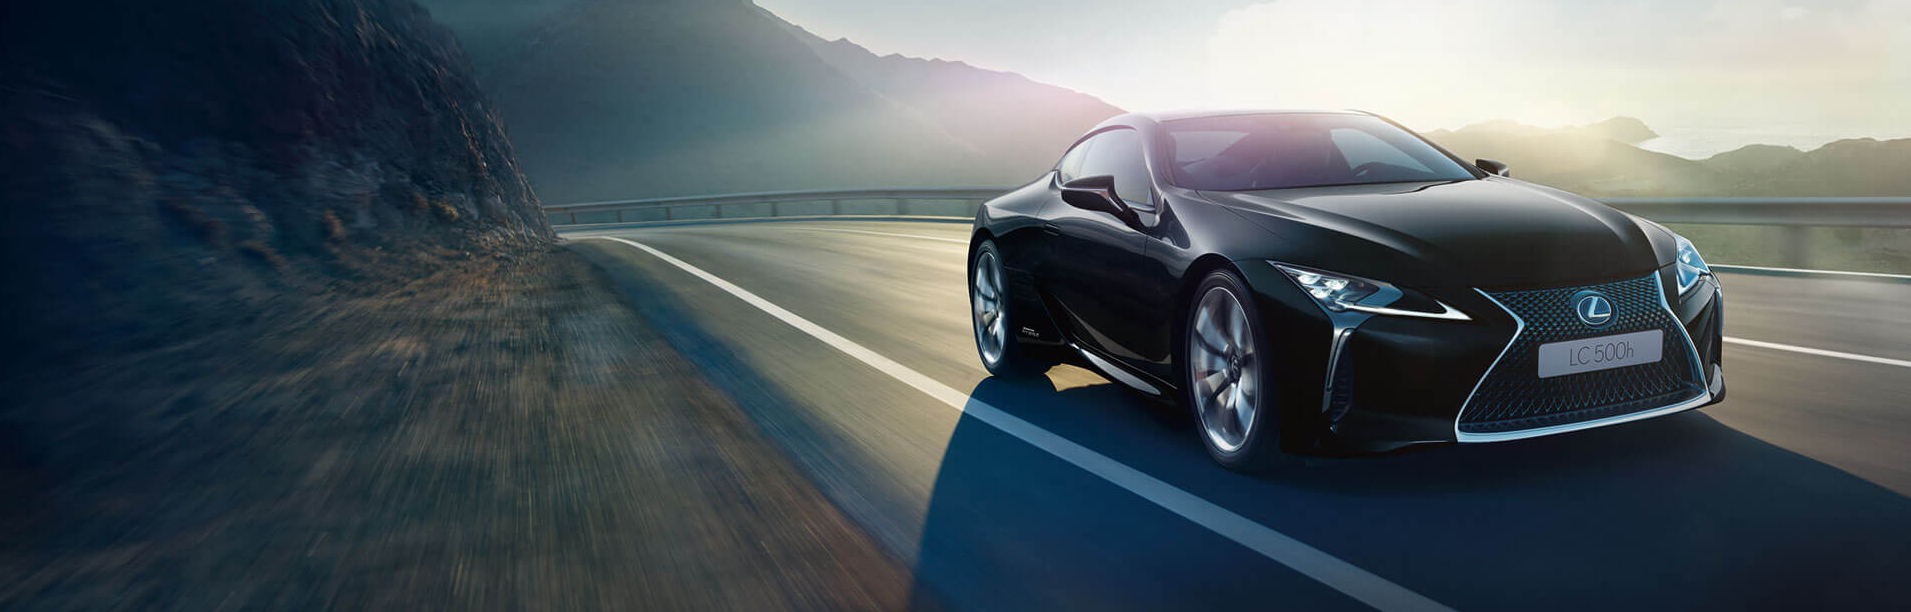 Lateral lexus lc500h